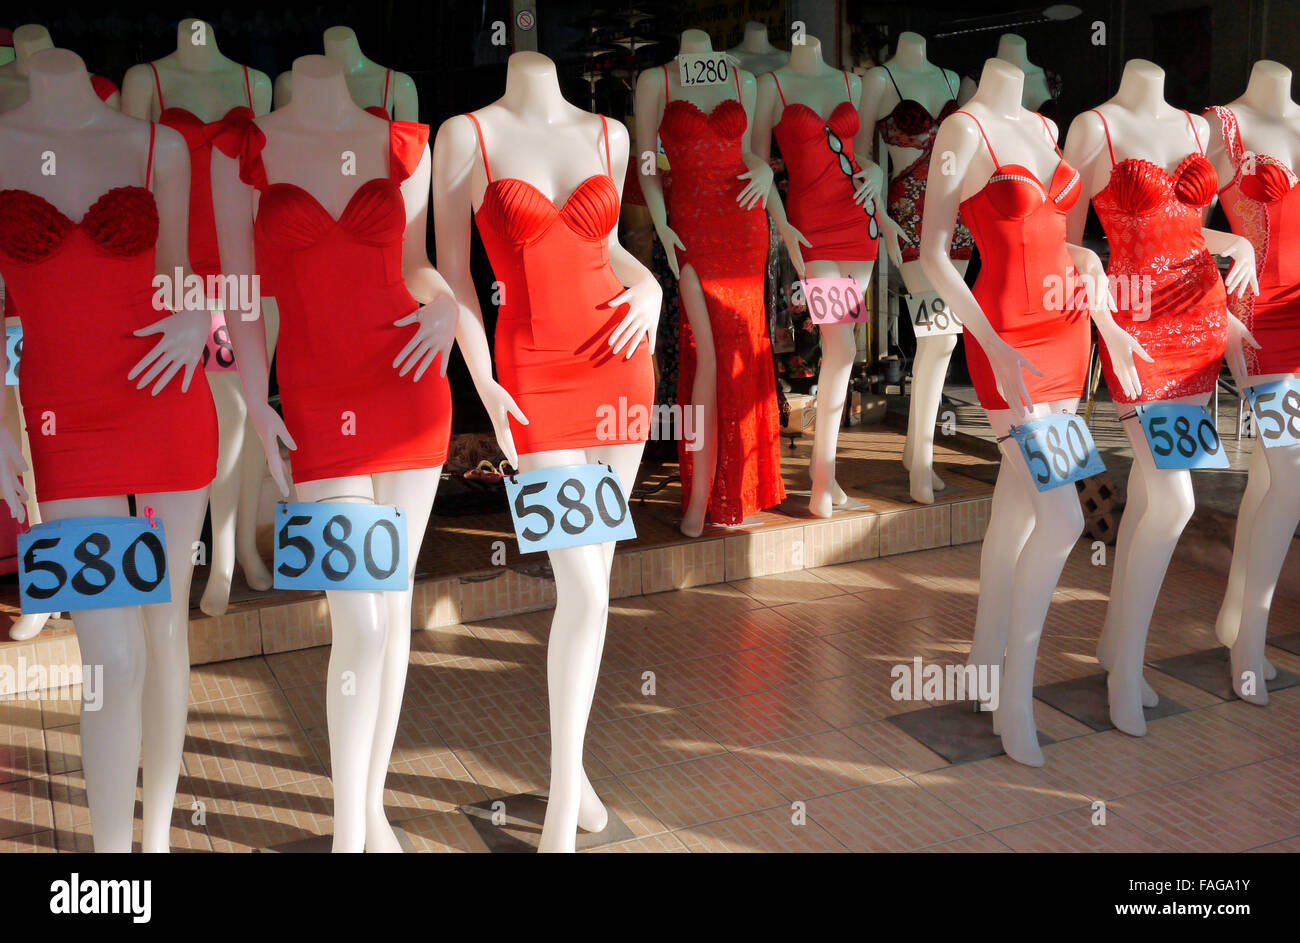 Cheap Red dresses for sale at one price of 8 Thai Baht displayed